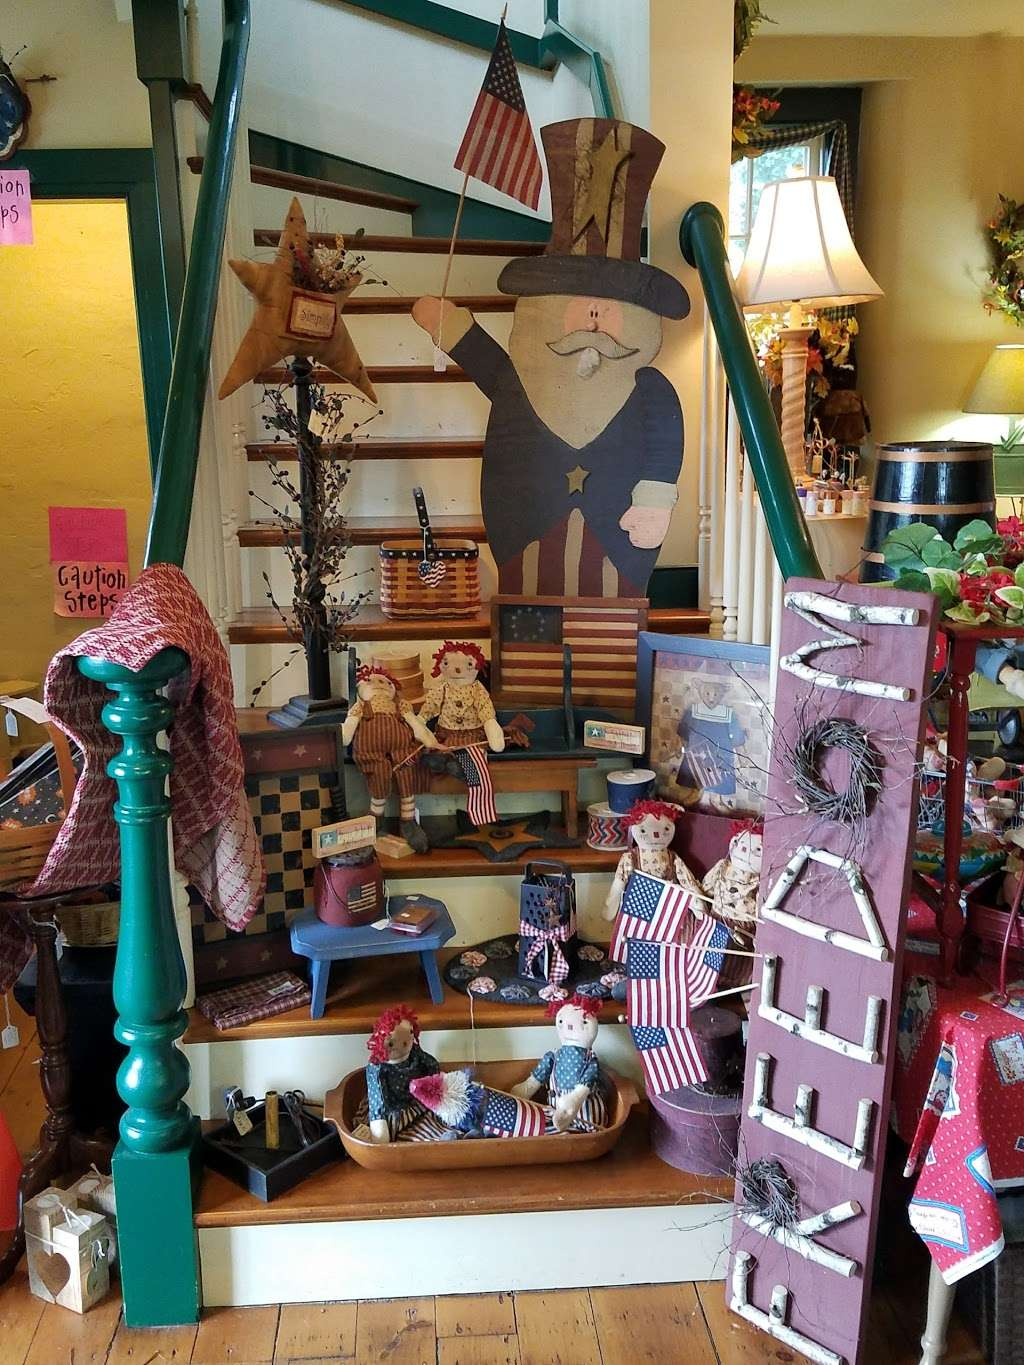 In Grandmas Attic - home goods store  | Photo 2 of 4 | Address: 3545 Lincoln Hwy E, Kinzers, PA 17535, USA | Phone: (717) 442-4337